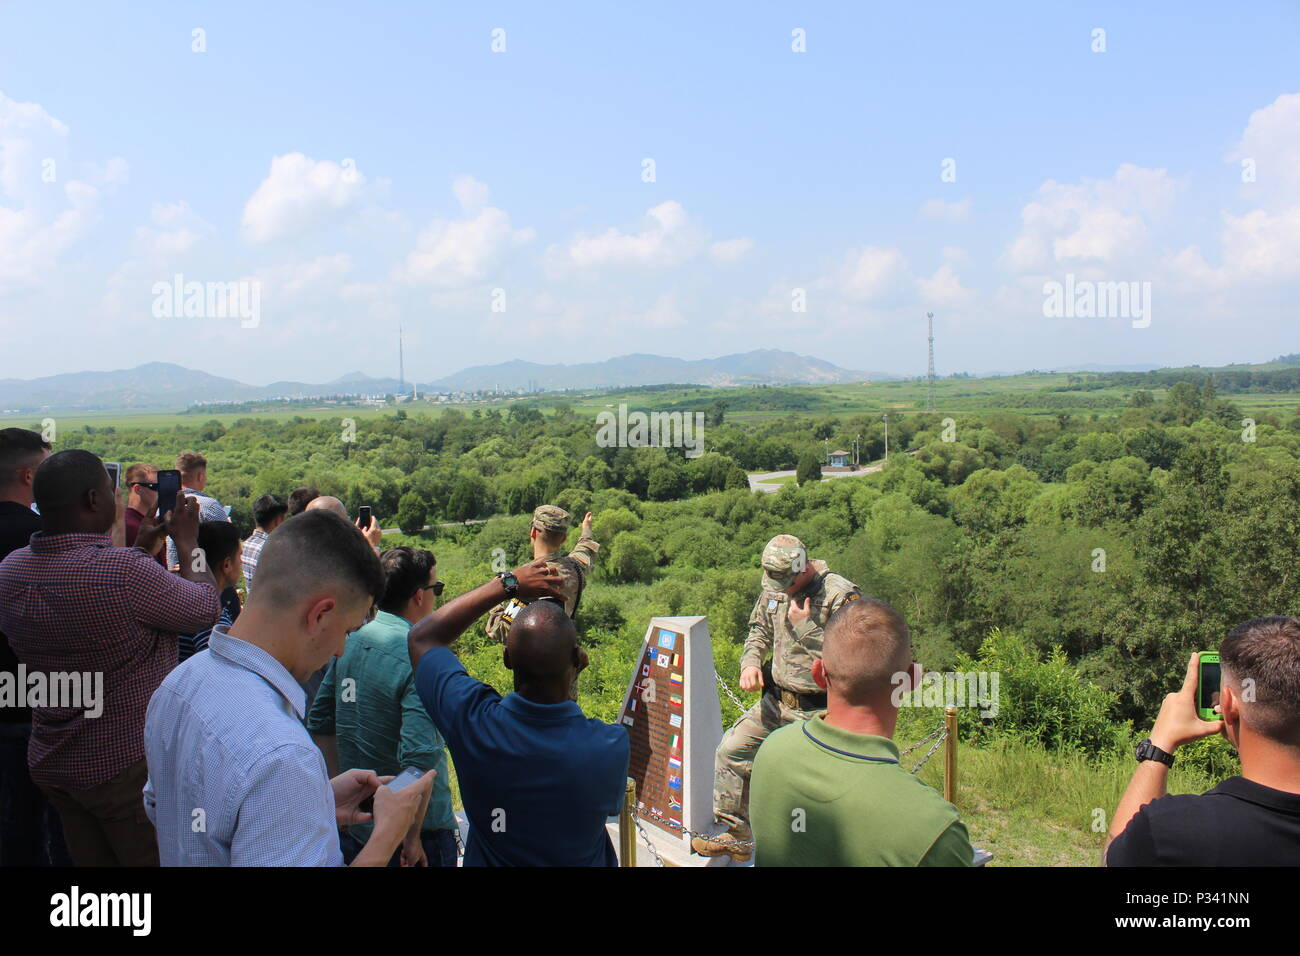 """Soldiers from 2nd Battalion, 8th Cavalry Regiment """"Stallions,"""" 1st Armored Brigade Combat Team, 1st Cavalry Division listen and take photos of the """"Bridge of No Return"""" and Kijong-dong """"peace village"""" in North Korea, while U.S. Army military police explain the significance of these sites. Soldiers visited Camp Bonifas, South Korea, as well as the Joint Security Area in the Korean Demilitarized Zone, the """"Bridge of No Return"""" and several other points of interest, during a tour Aug. 16. (U.S. Army photo by Spc. Jeremy Reuse, 2nd Battalion, 8th Cavalry Regiment, 1st Armored Brigade Combat Team, 1 Stock Photo"""